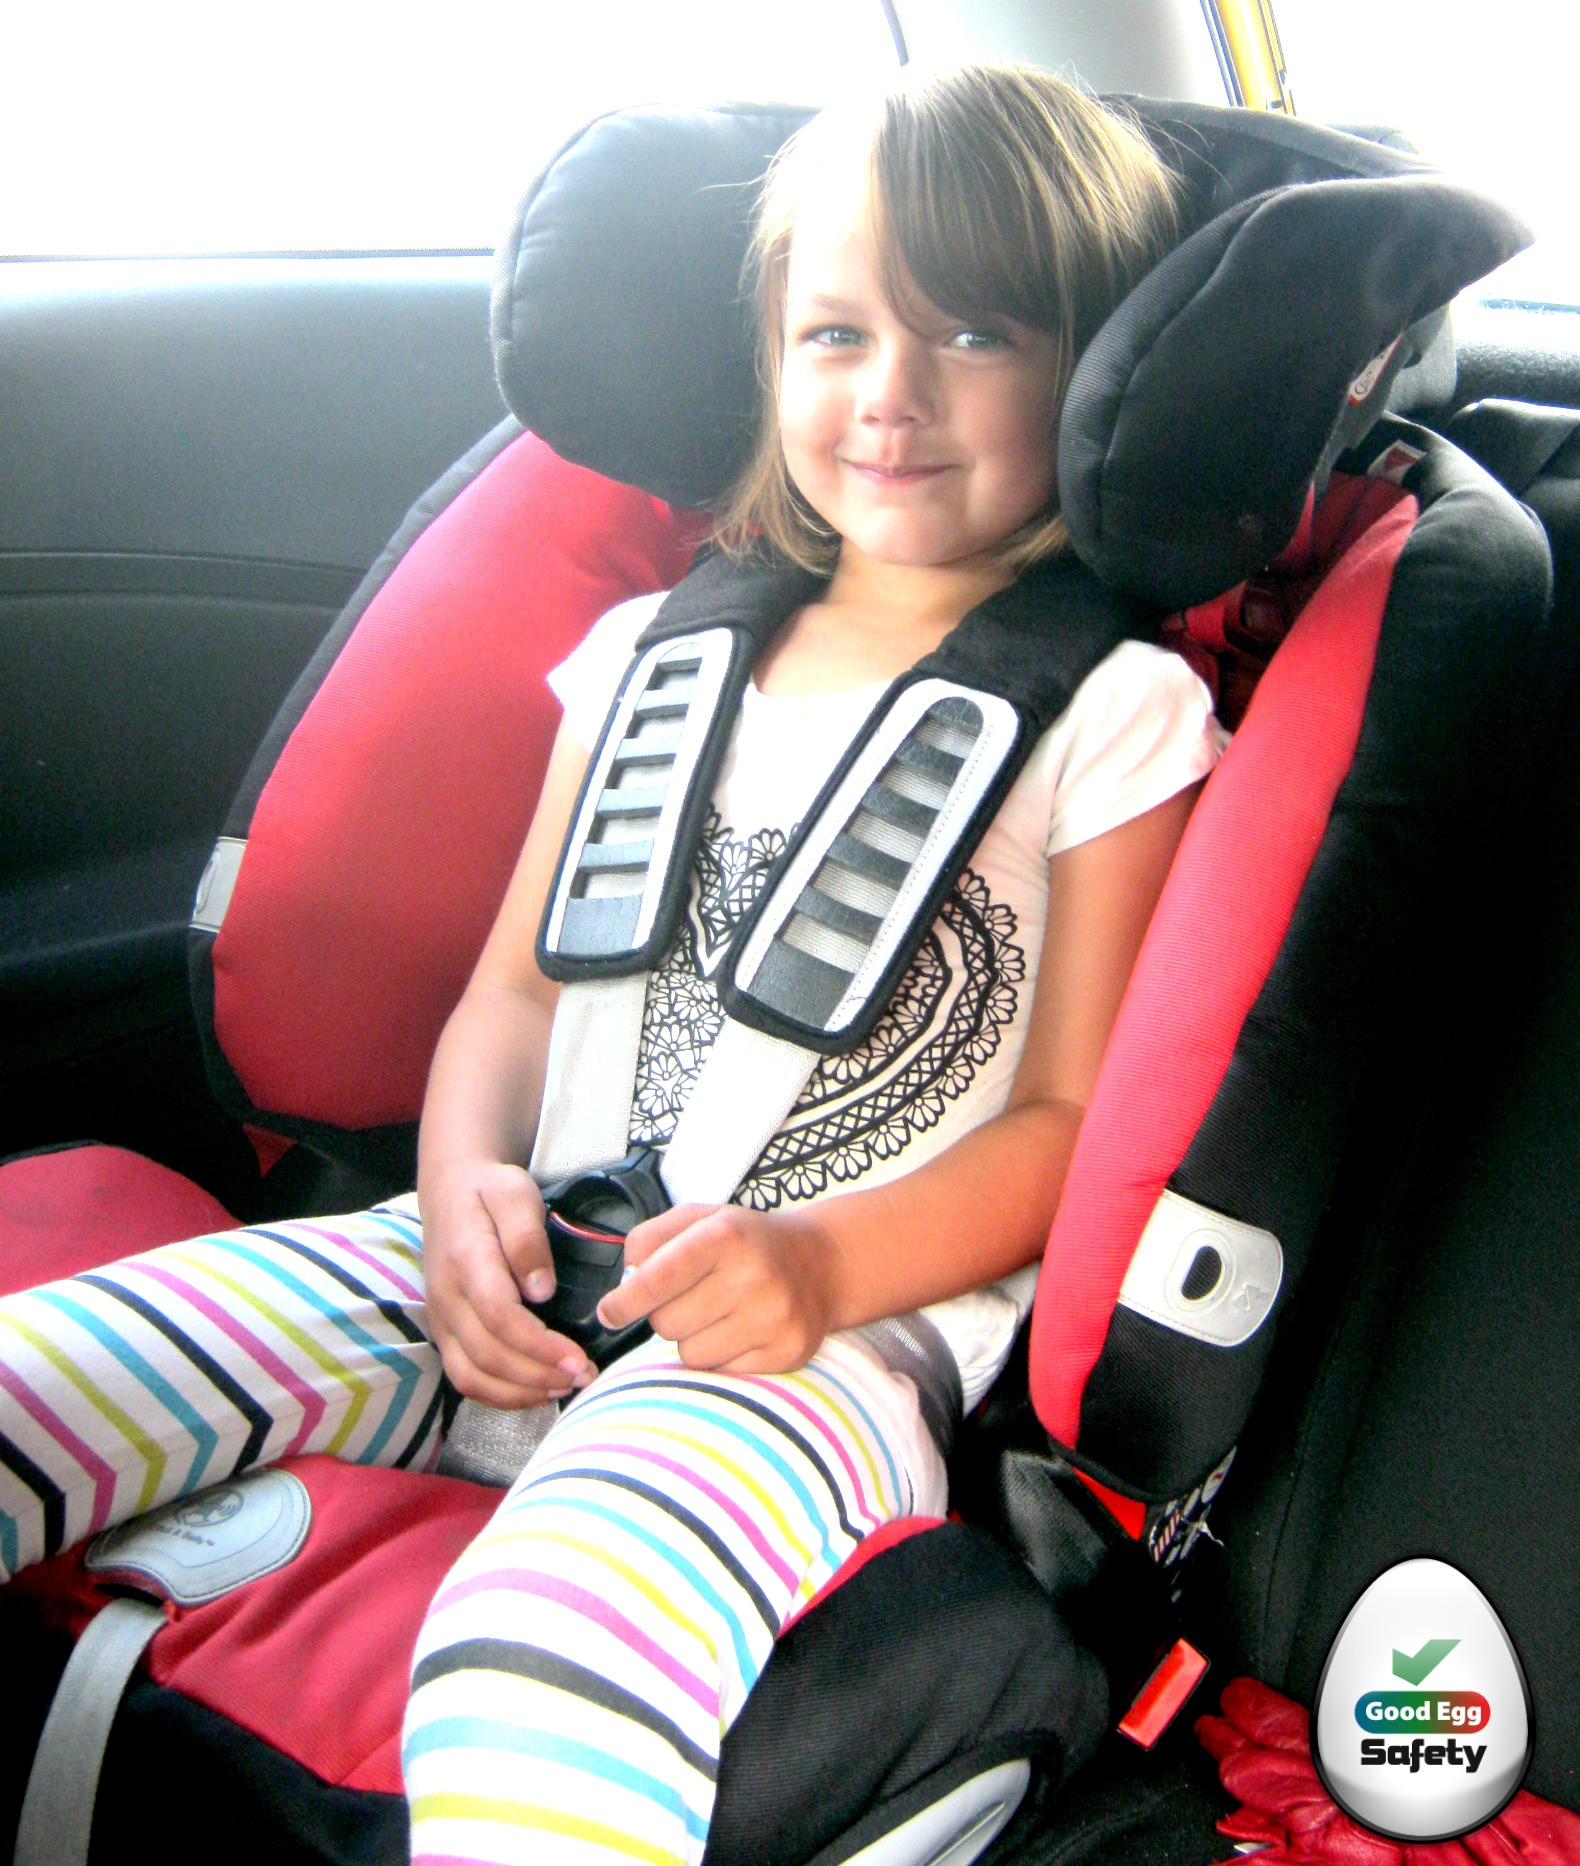 The child car seat harness - Updated - Good Egg Car Safety